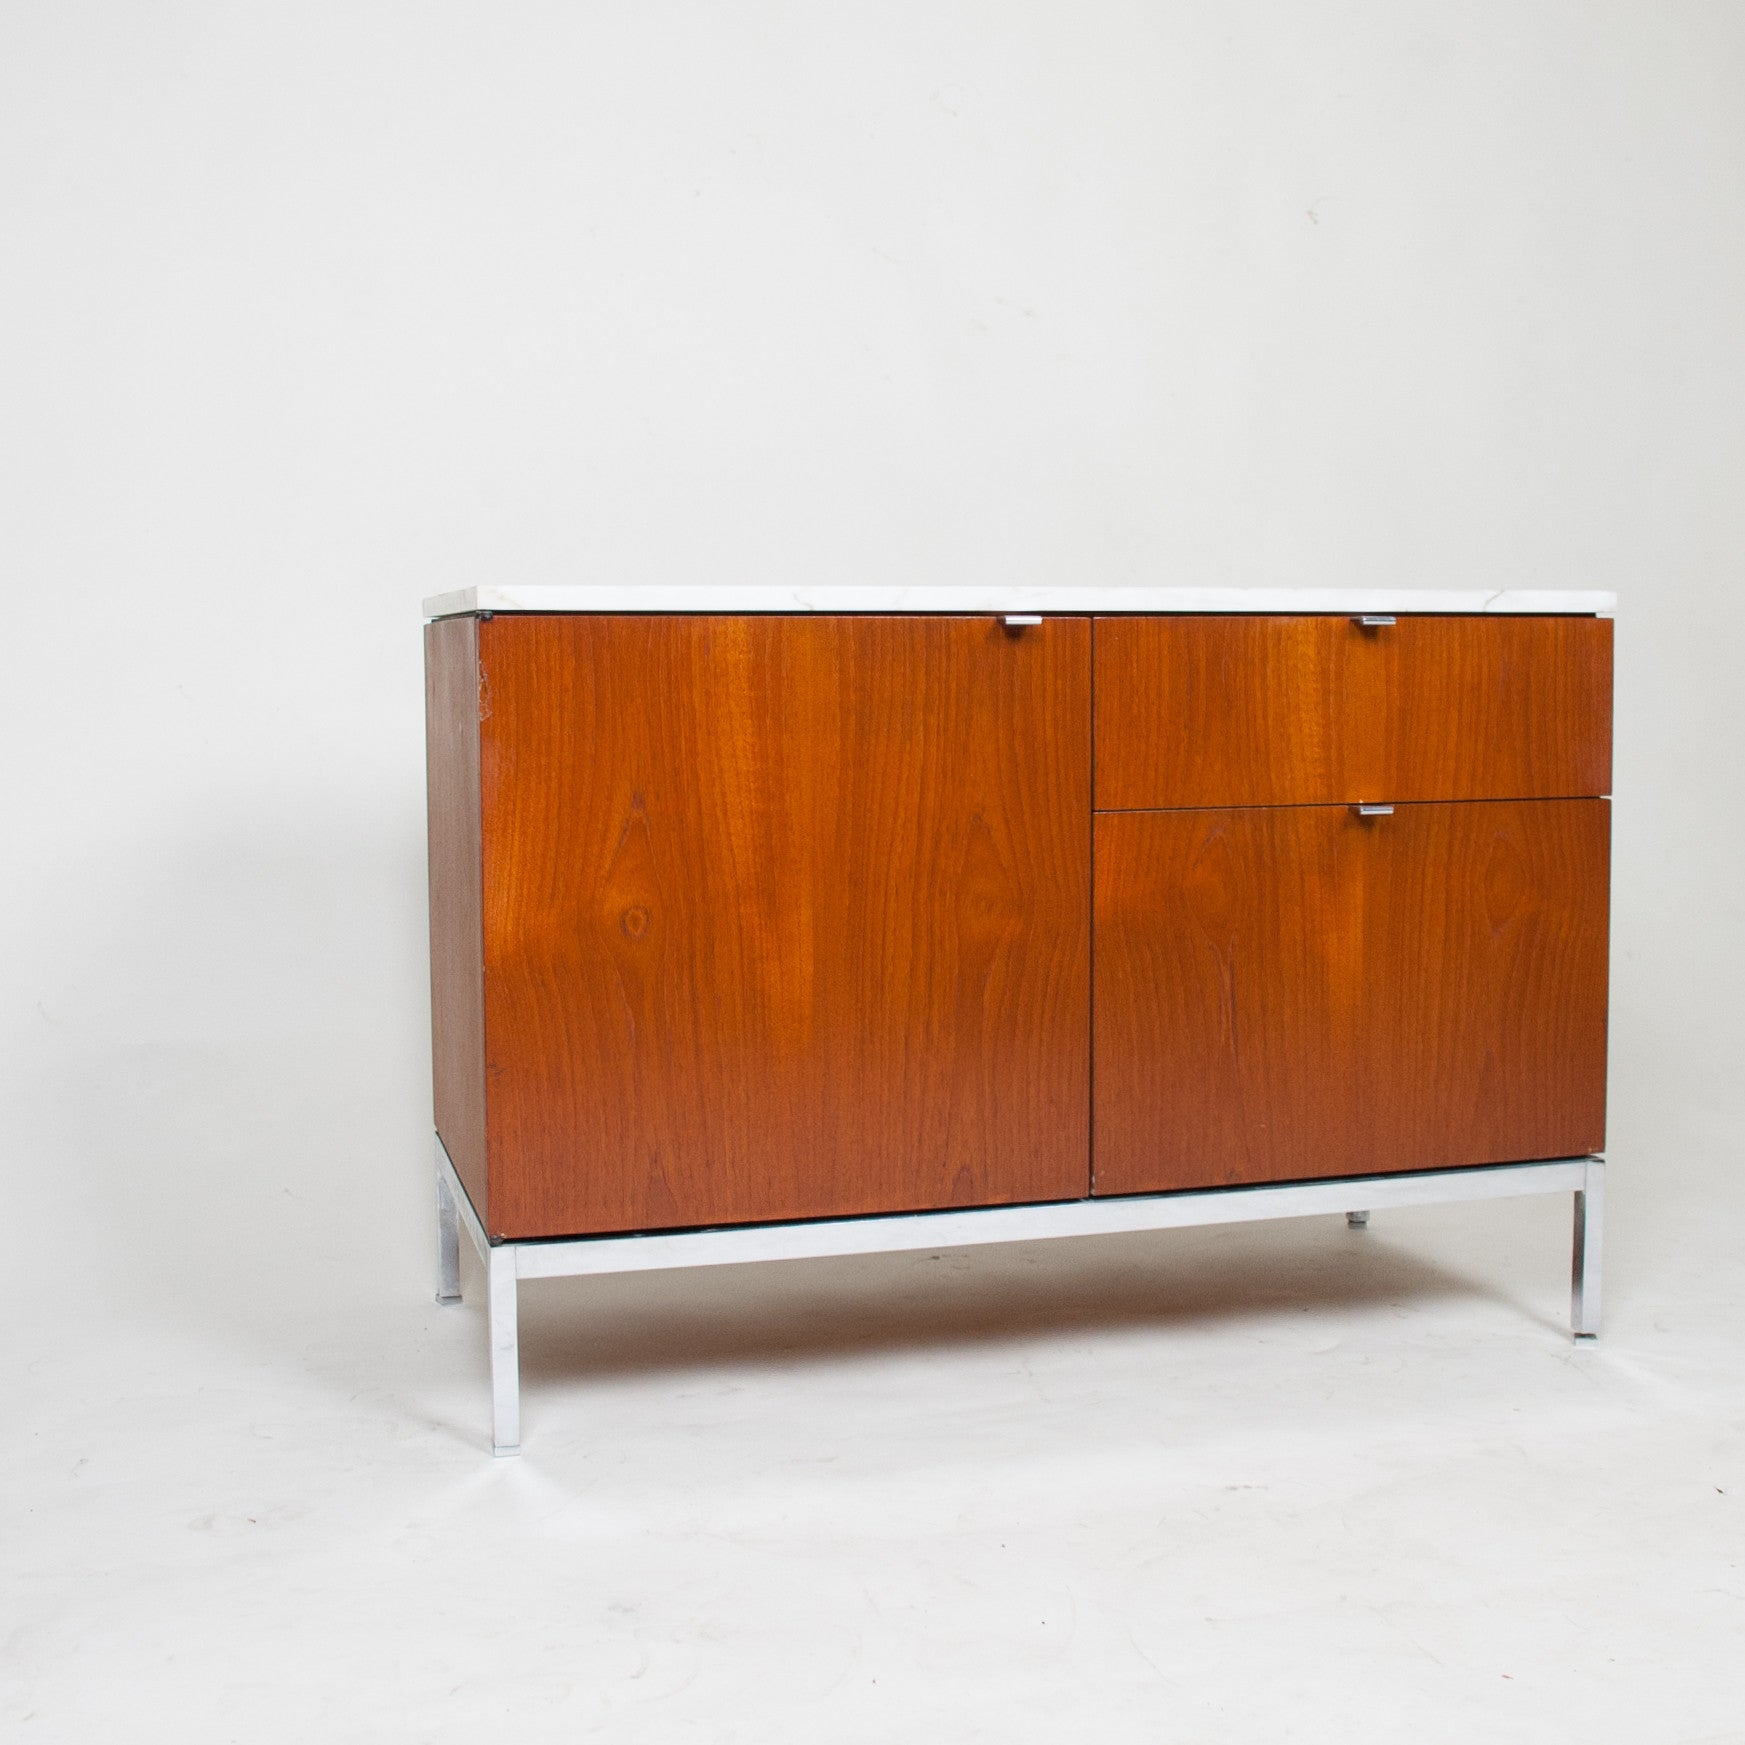 SOLD Florence Knoll Vintage Wood and Marble Credenza Cabinet Sideboard